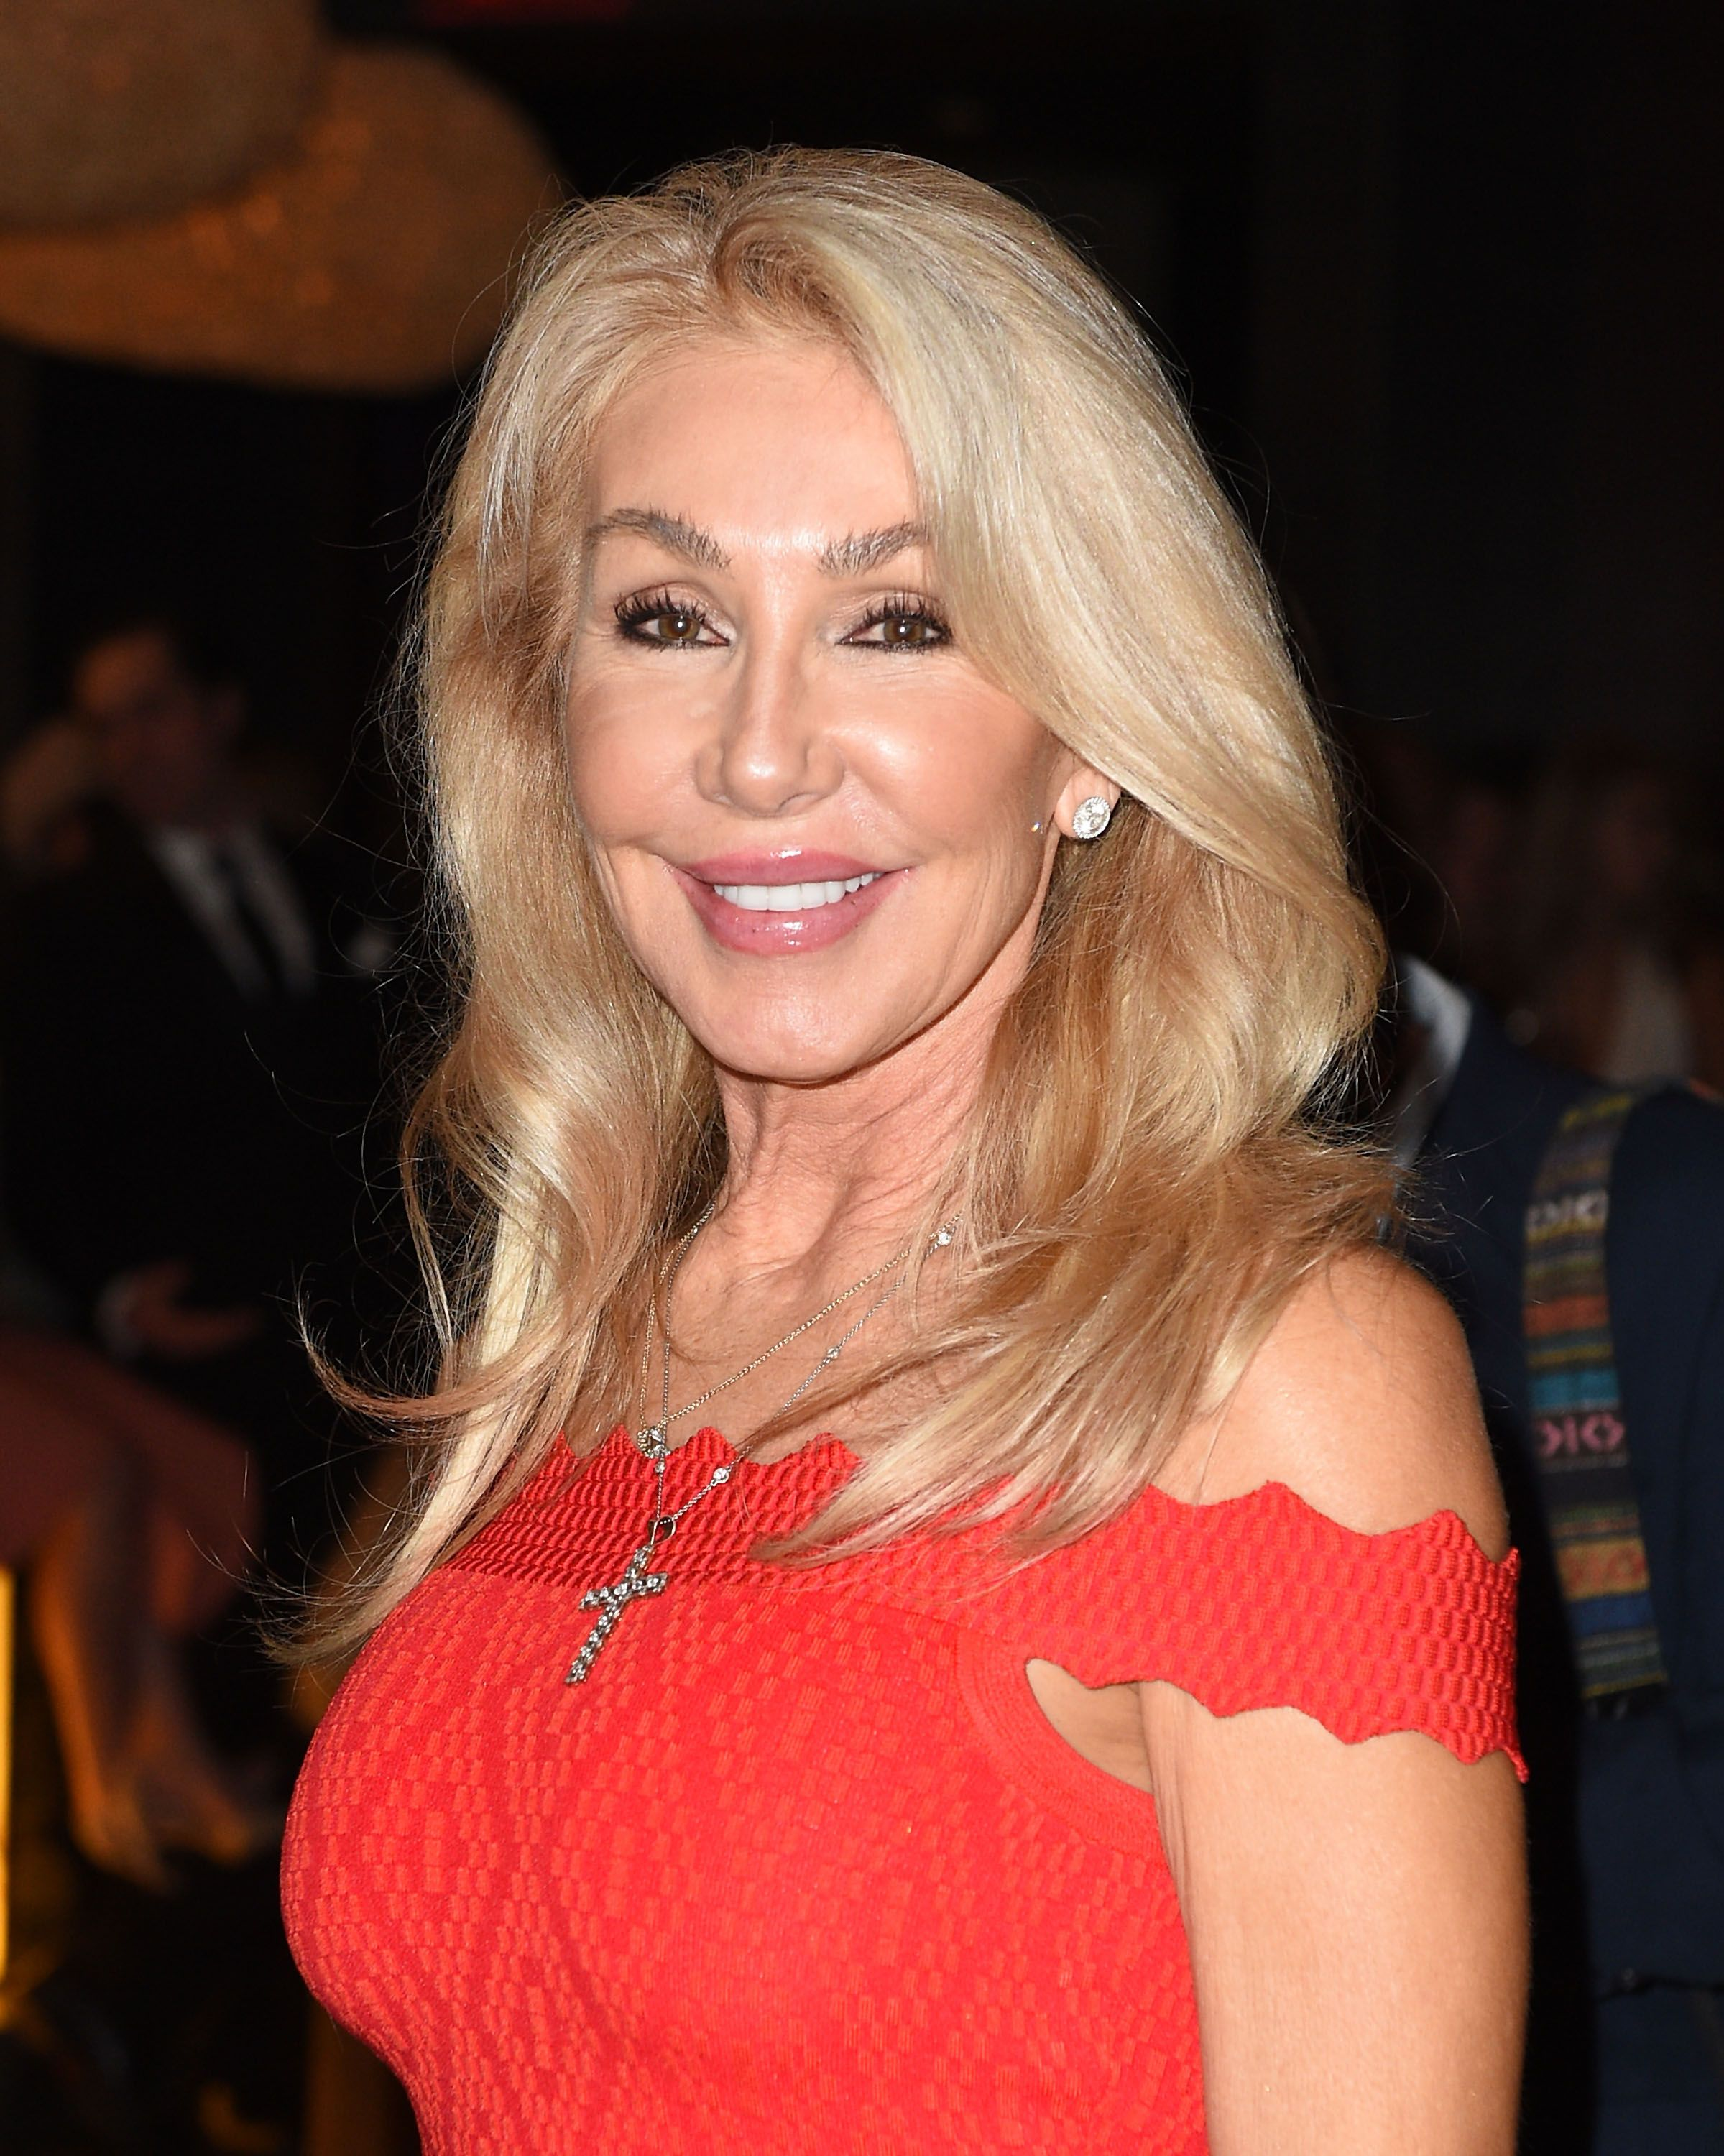 Linda Thompson at the Kodak Oscar Gala in February 2017 in Los Angeles, California   Source: Getty Images